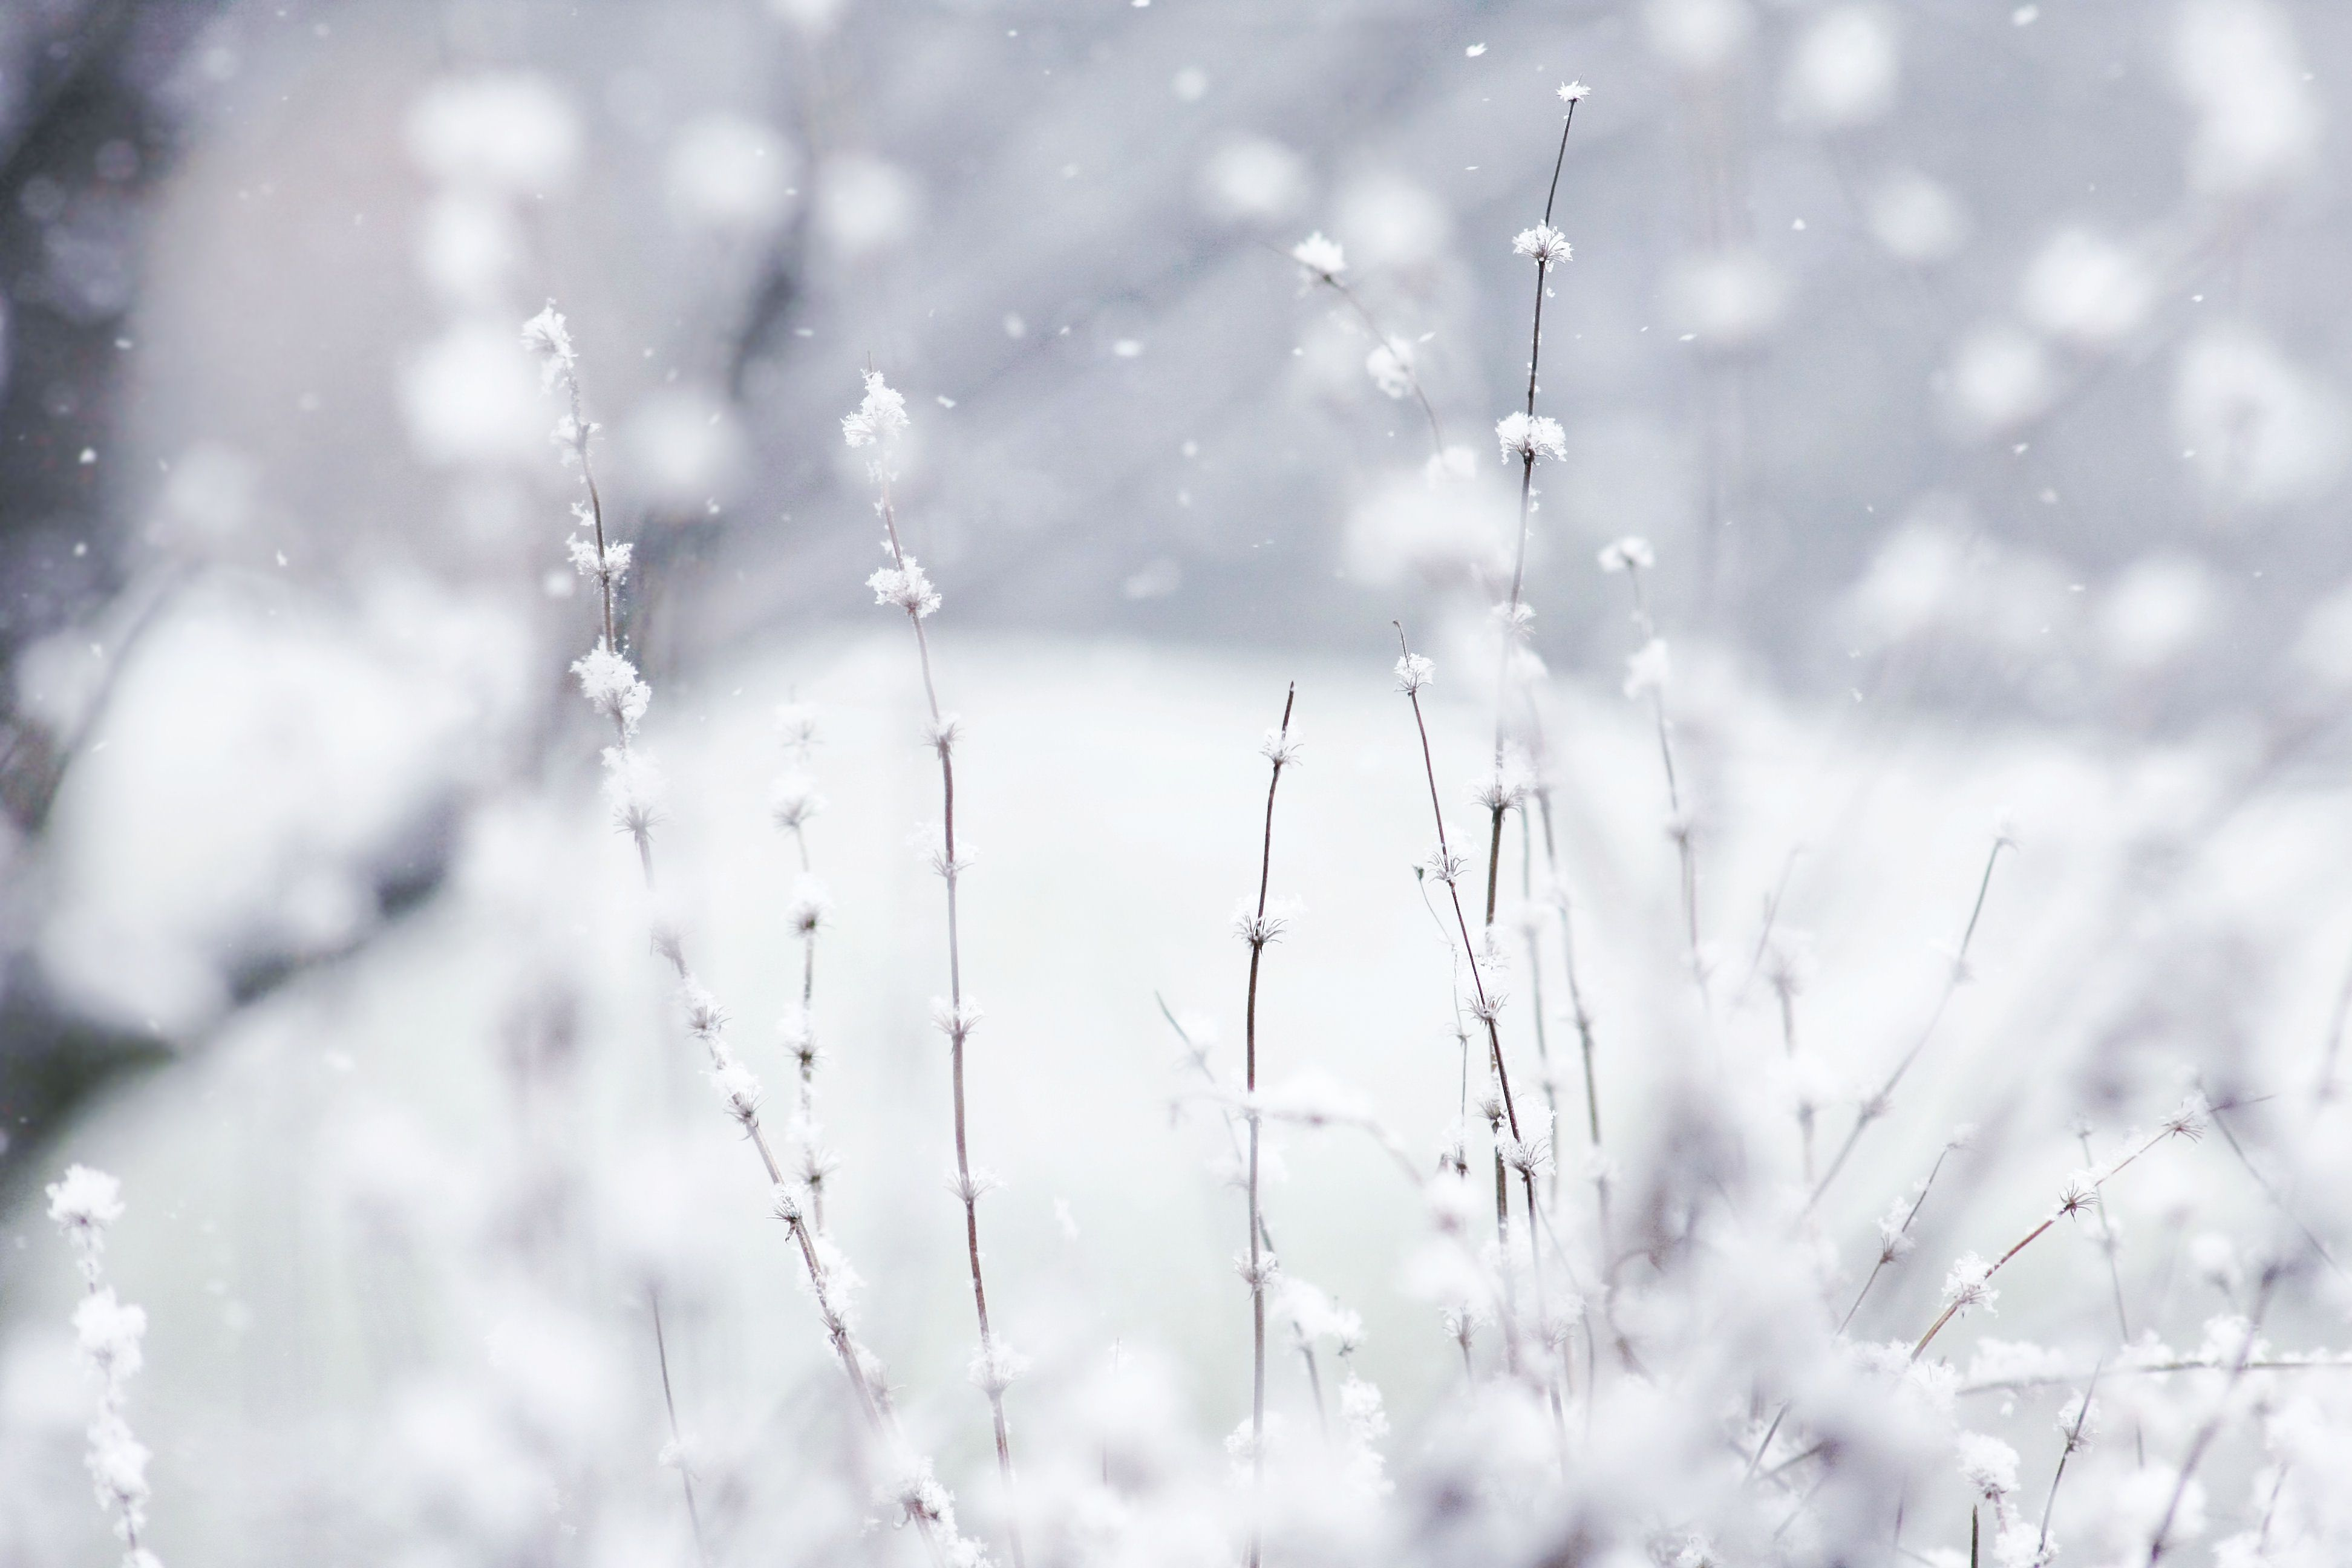 free winter backgrounds winter wallpaper winter snow winter love winter wallpaper winter snow